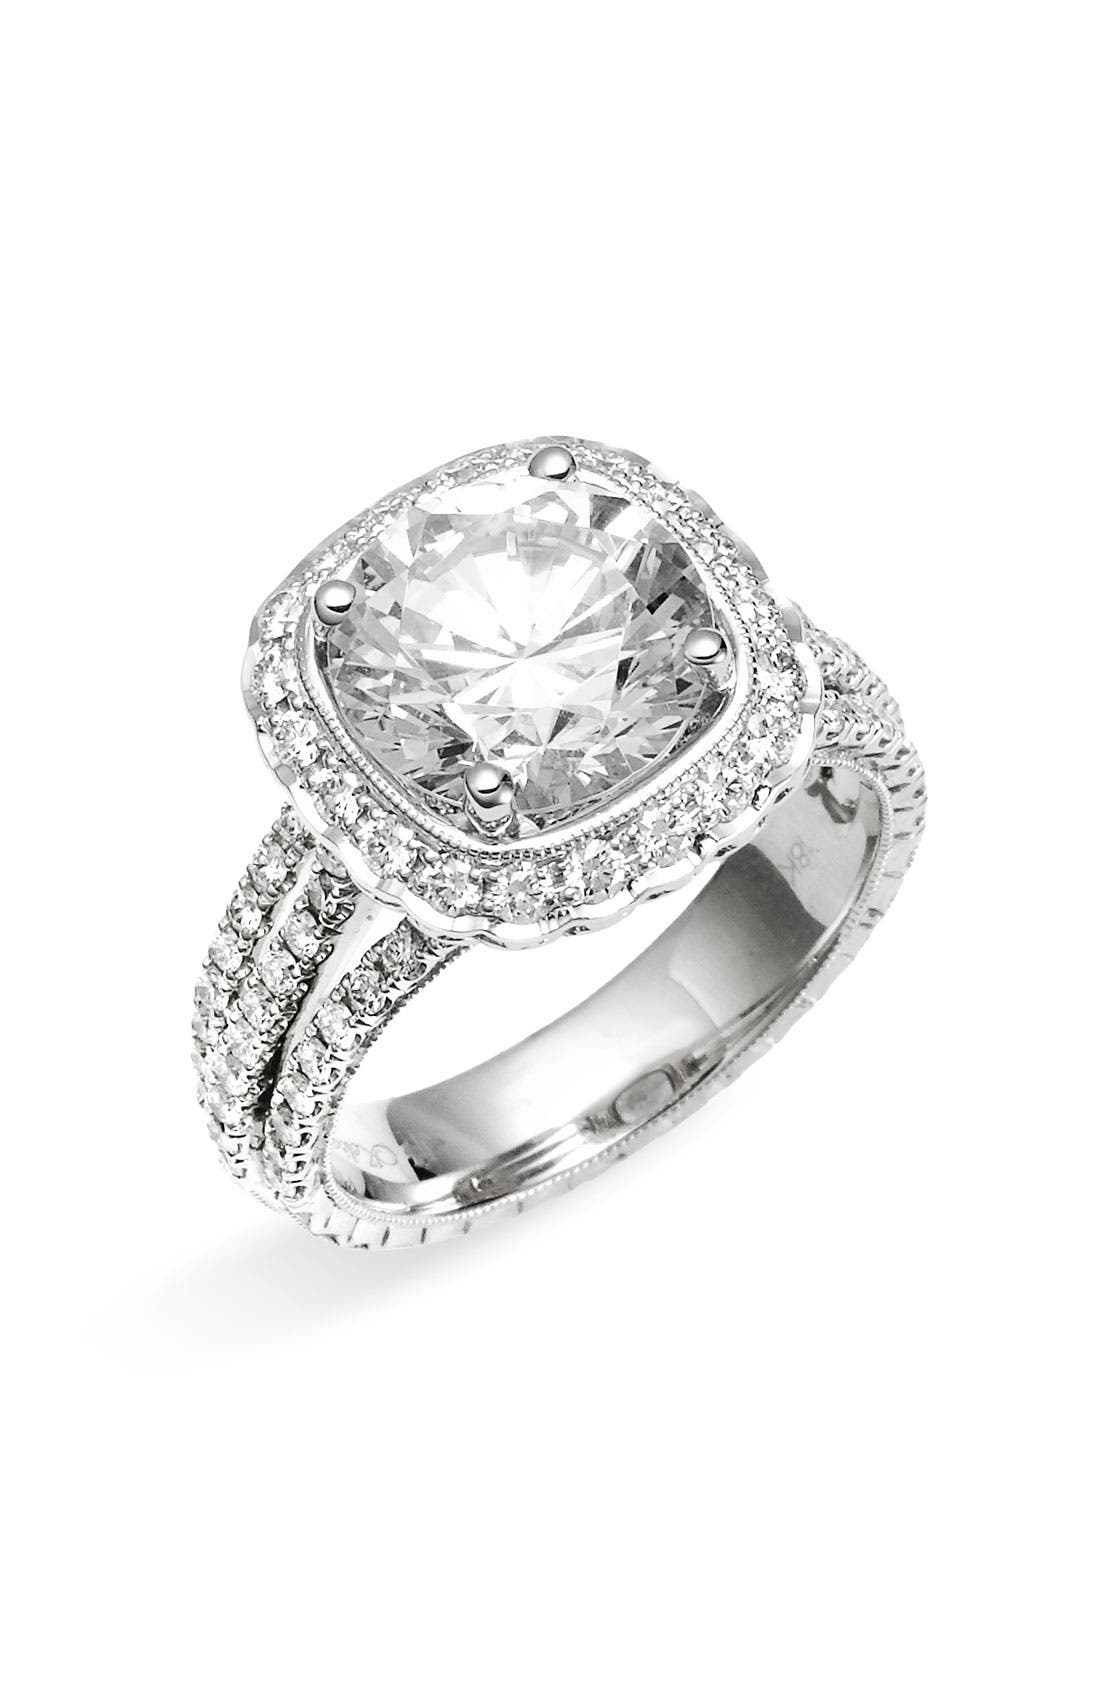 Alternate Image 1 Selected - Jack Kelége 'Romance' Diamond Engagement Ring Setting